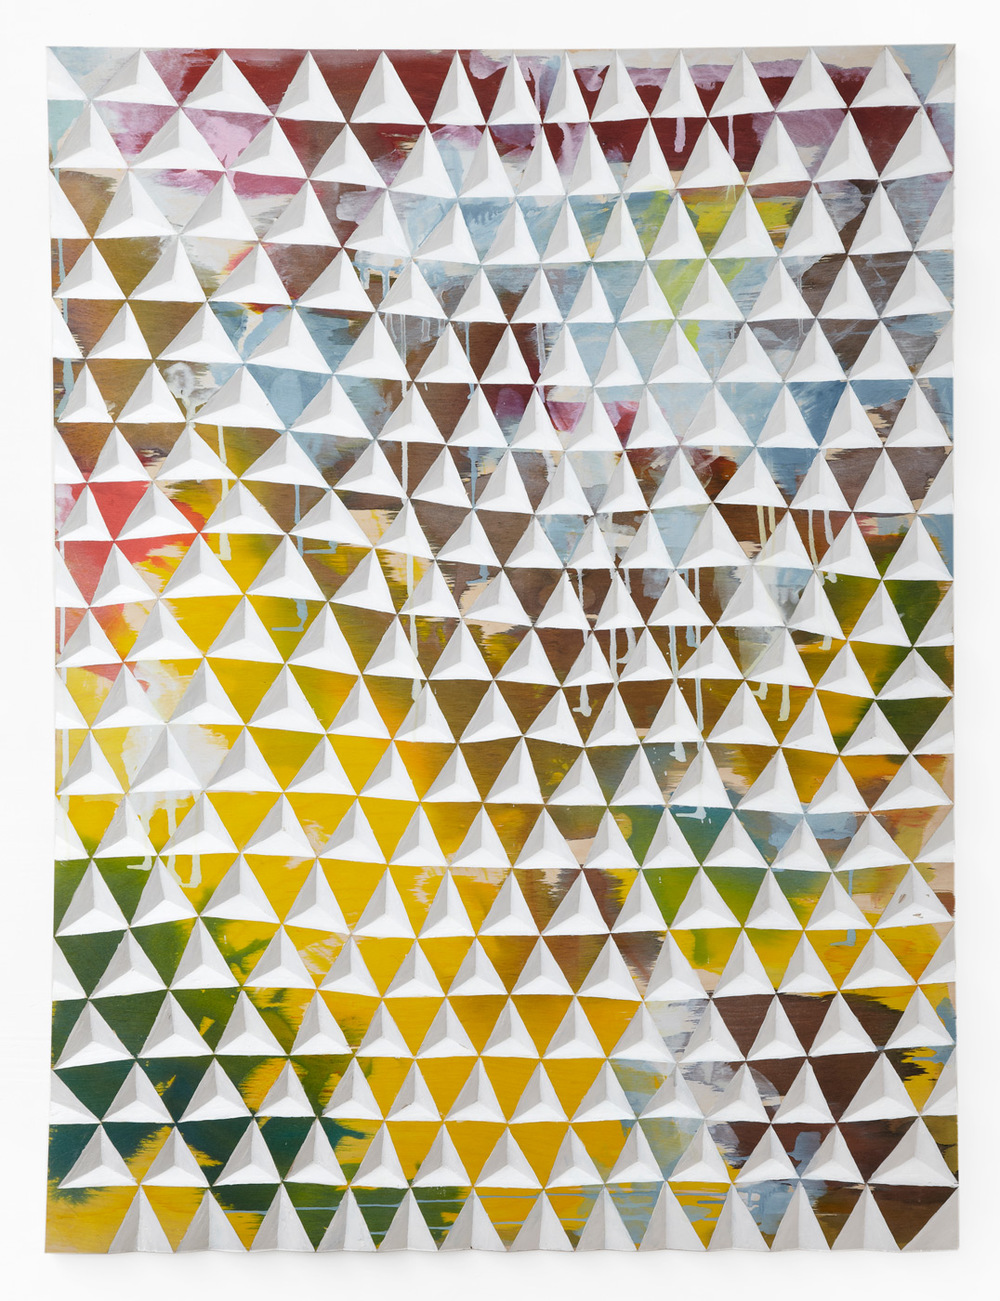 Gerard Mullin, Untitled, 2013, watercolor, wood dye acrylic on wood, 48 x 35 3/4 inches